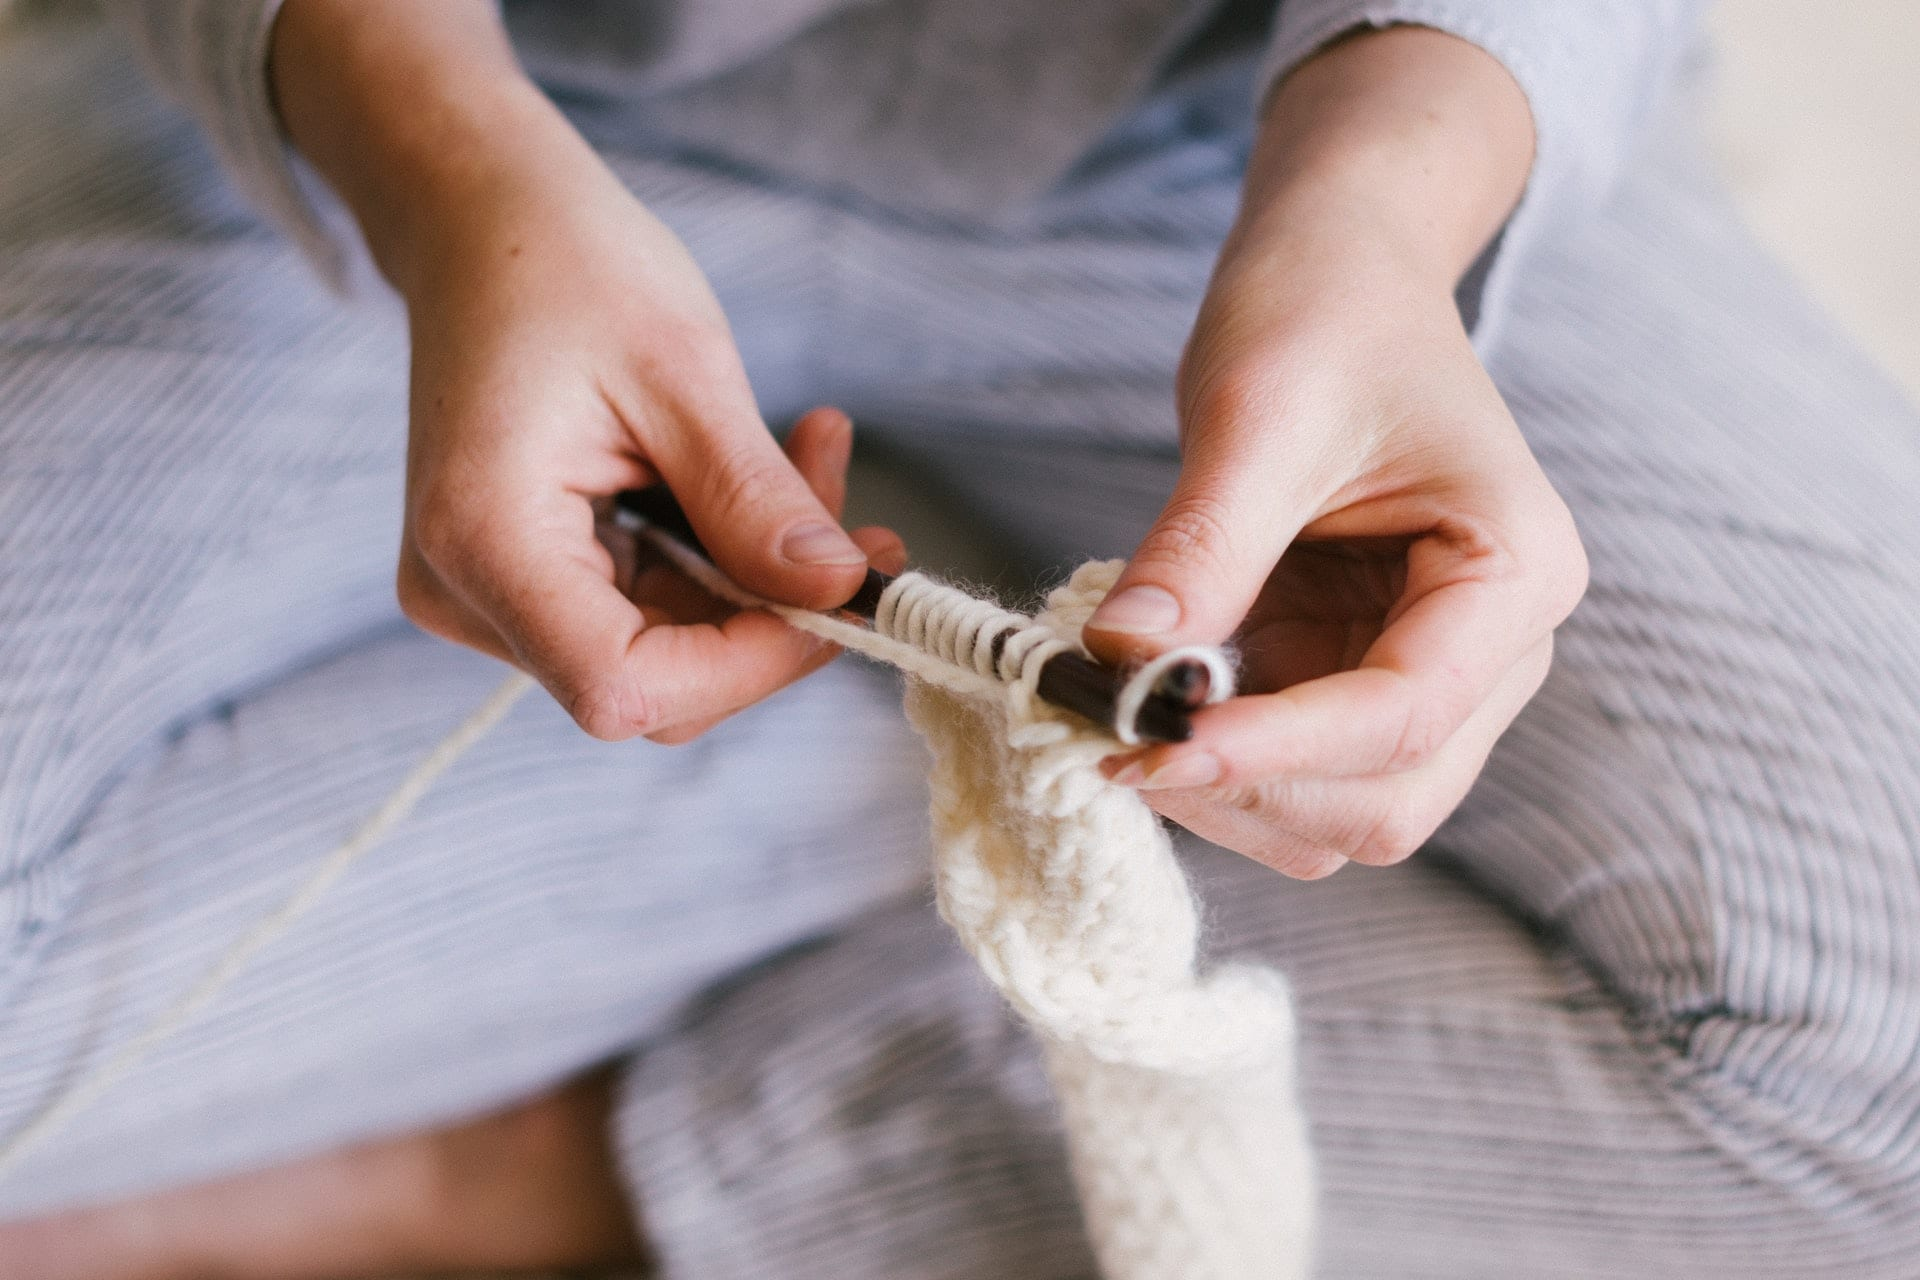 How Do I Stop My Fingers From Hurting When I Knit?